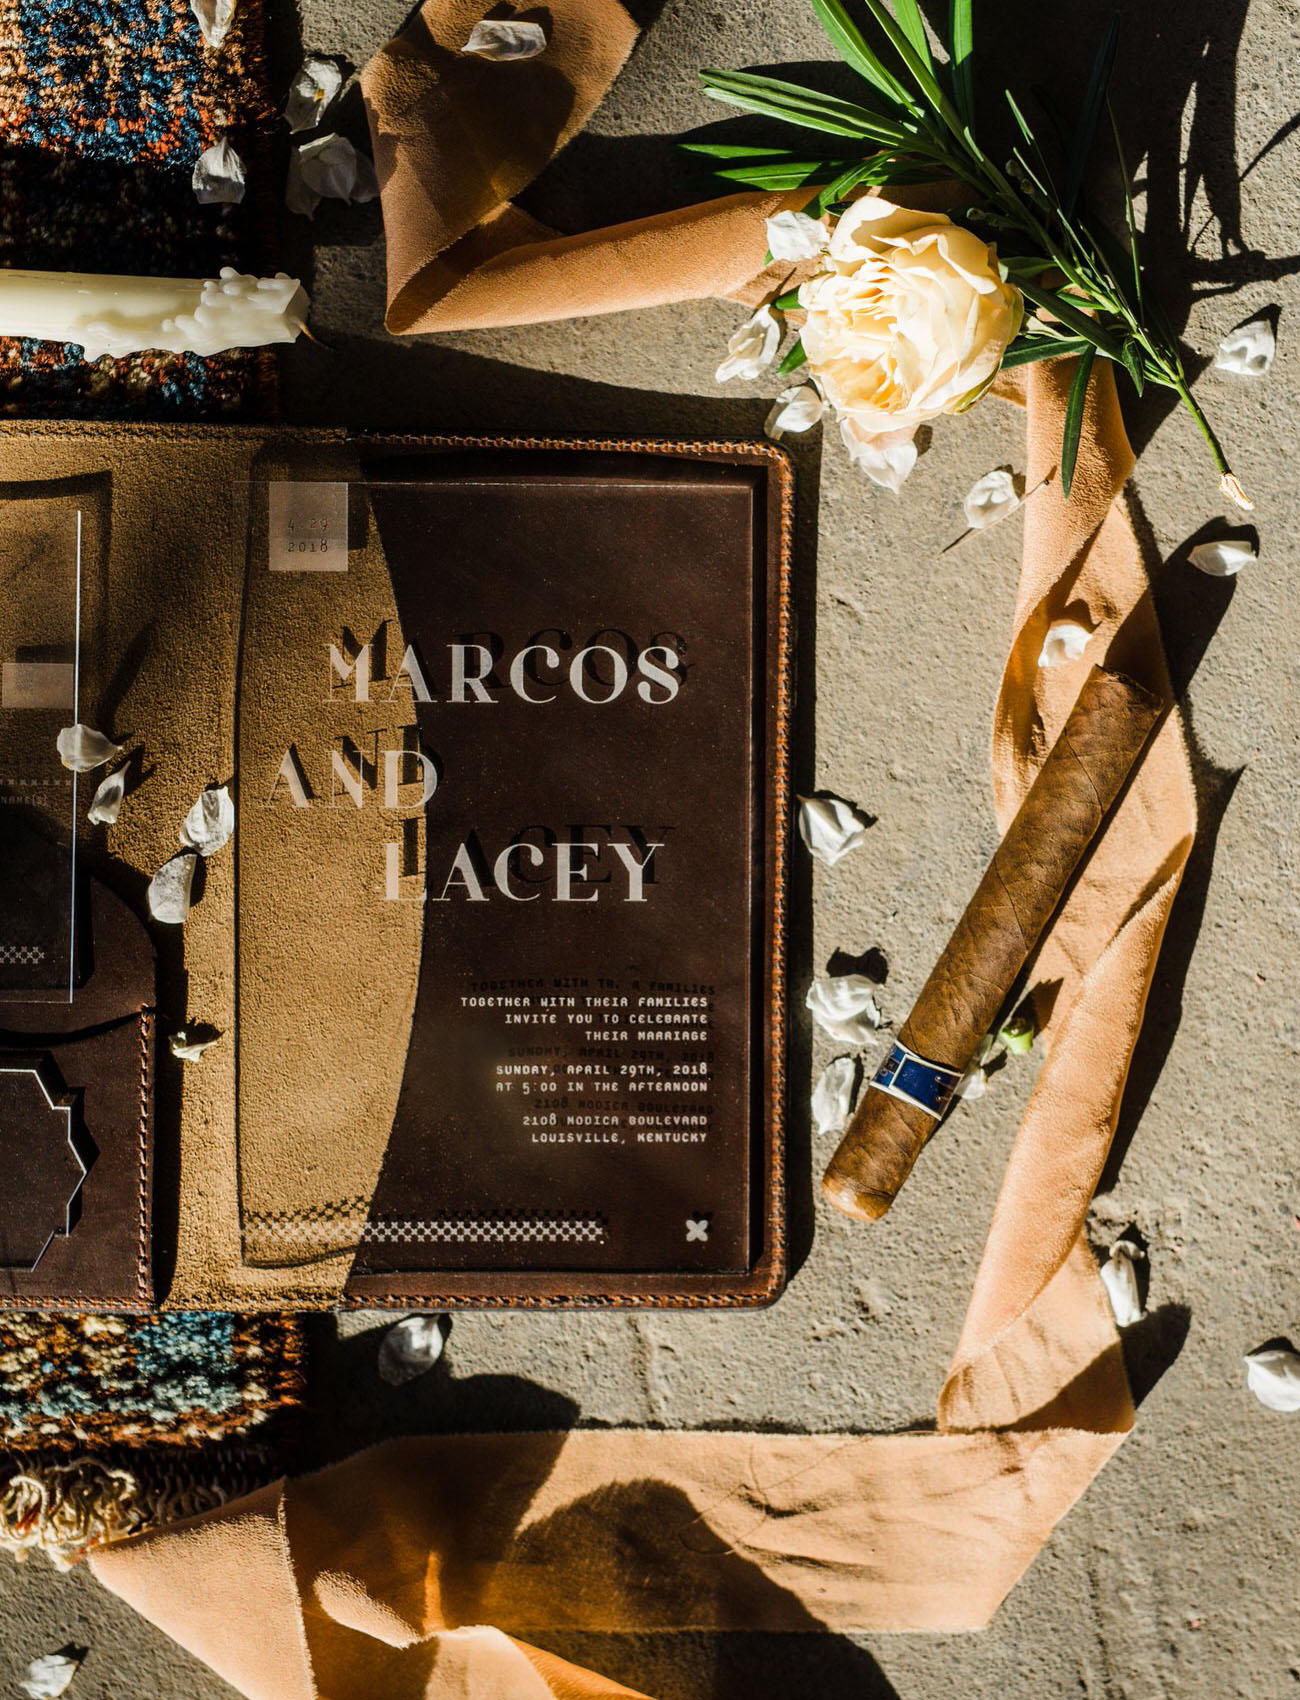 The wedding invitations were acrylic and leather ones to add a modern edgy touch